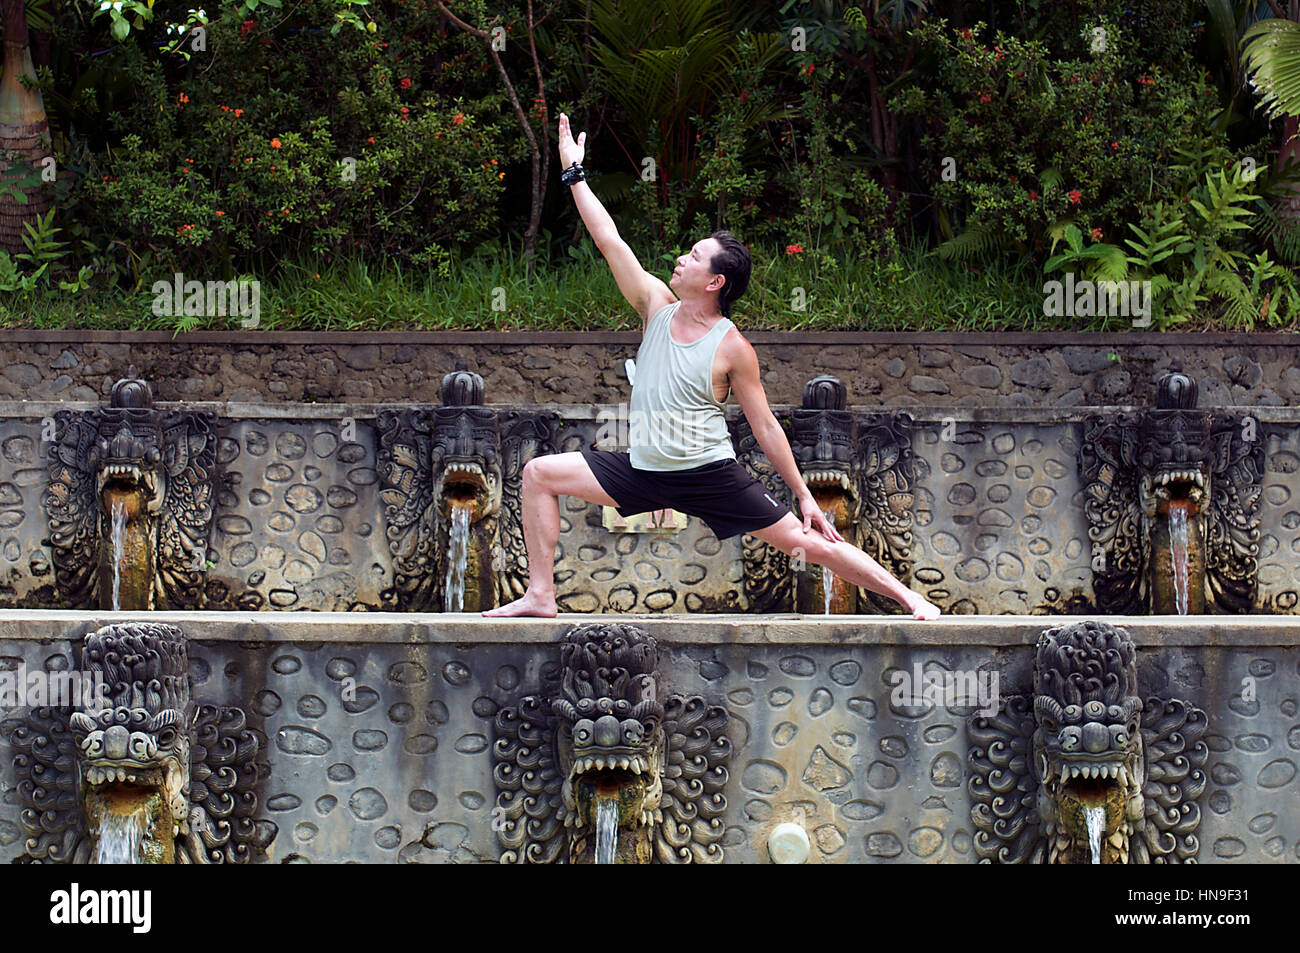 Middle-Aged Asian Man Holds a Hatha Warrior Yoga Pose at Banjar Hot Springs Pools in Bali, Indonesia as Water Pours - Stock Image